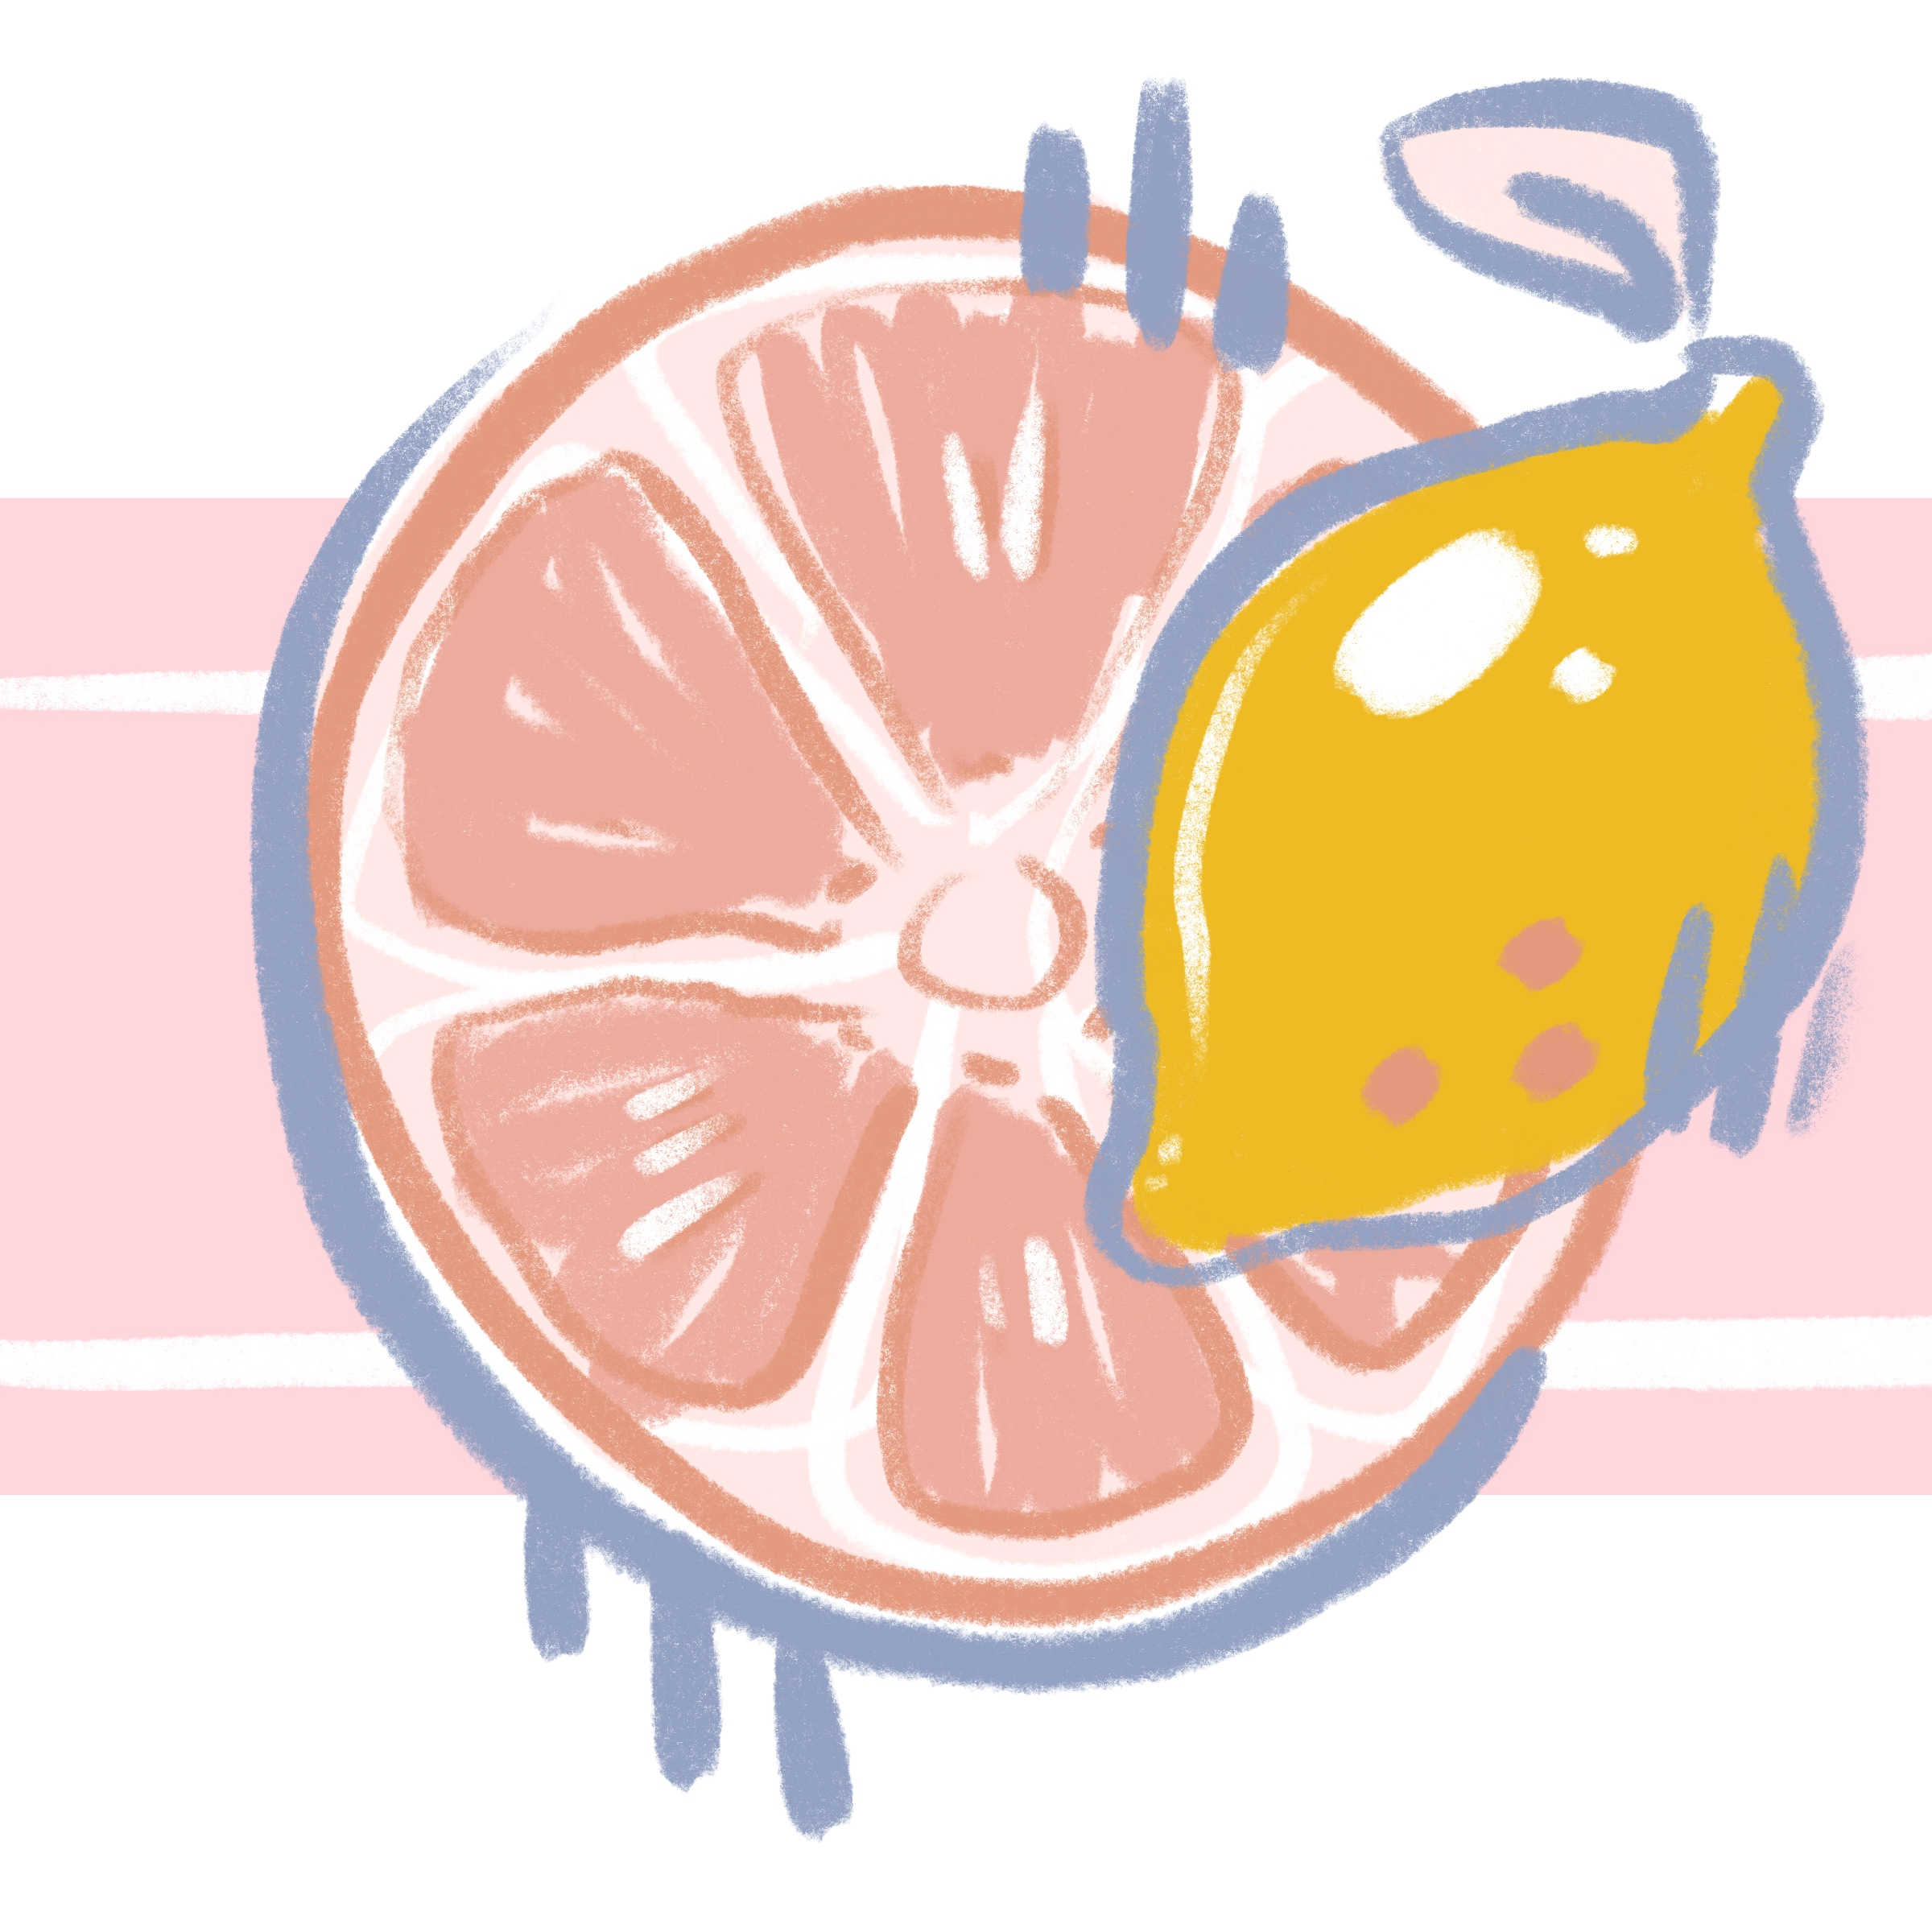 Pink and yellow Grapefruit Lemonade Label Graphic